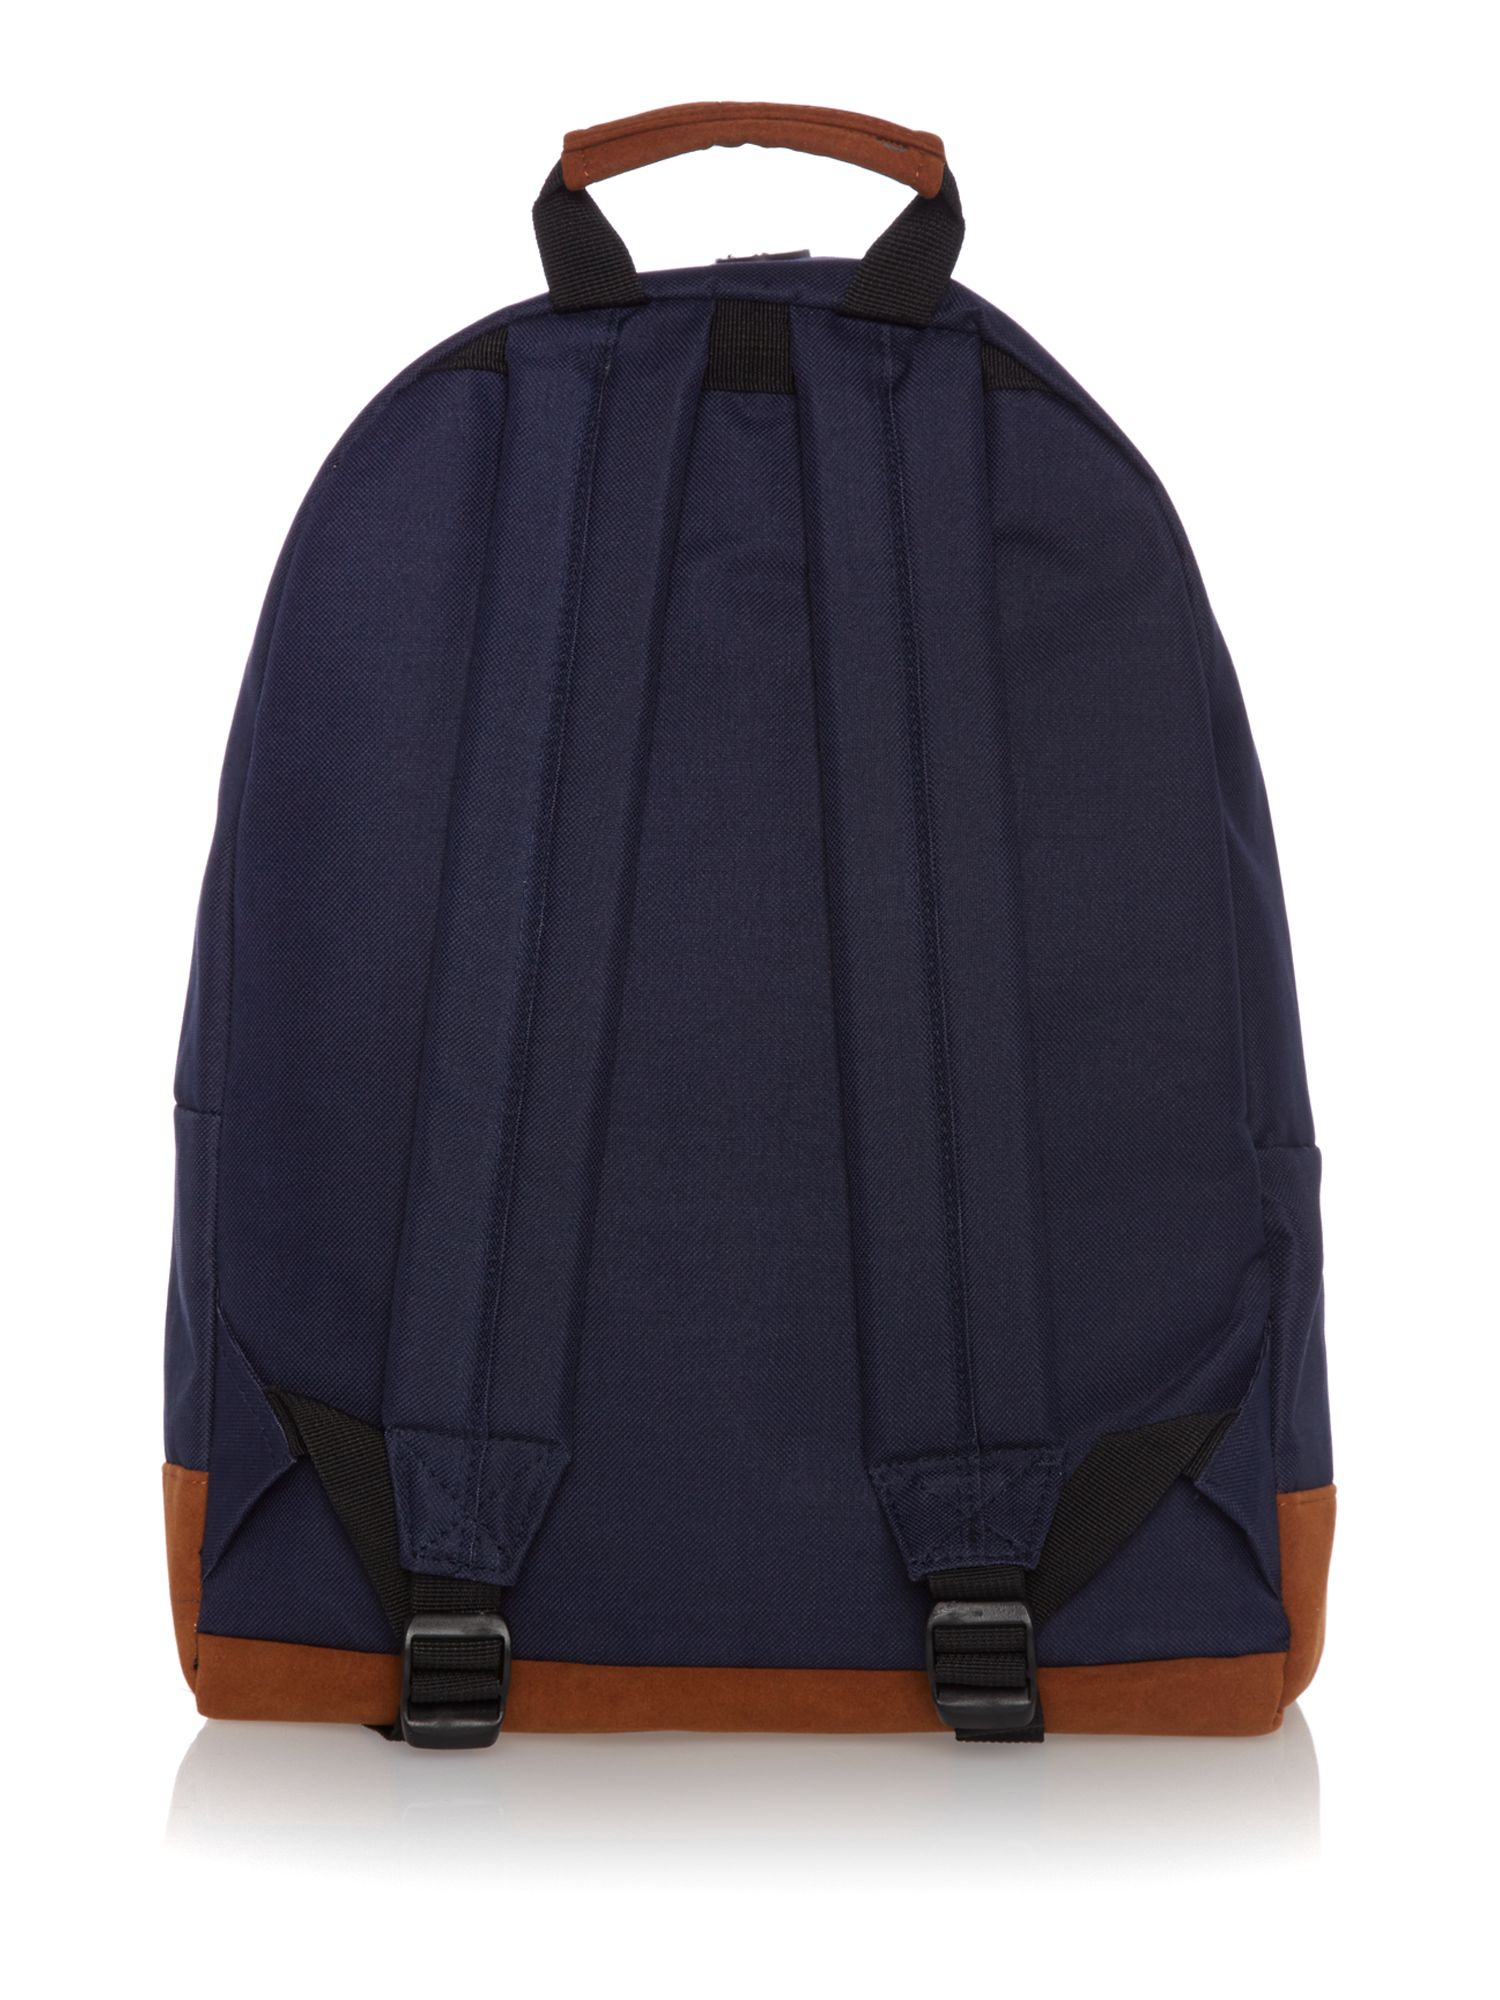 Nordic print backpack